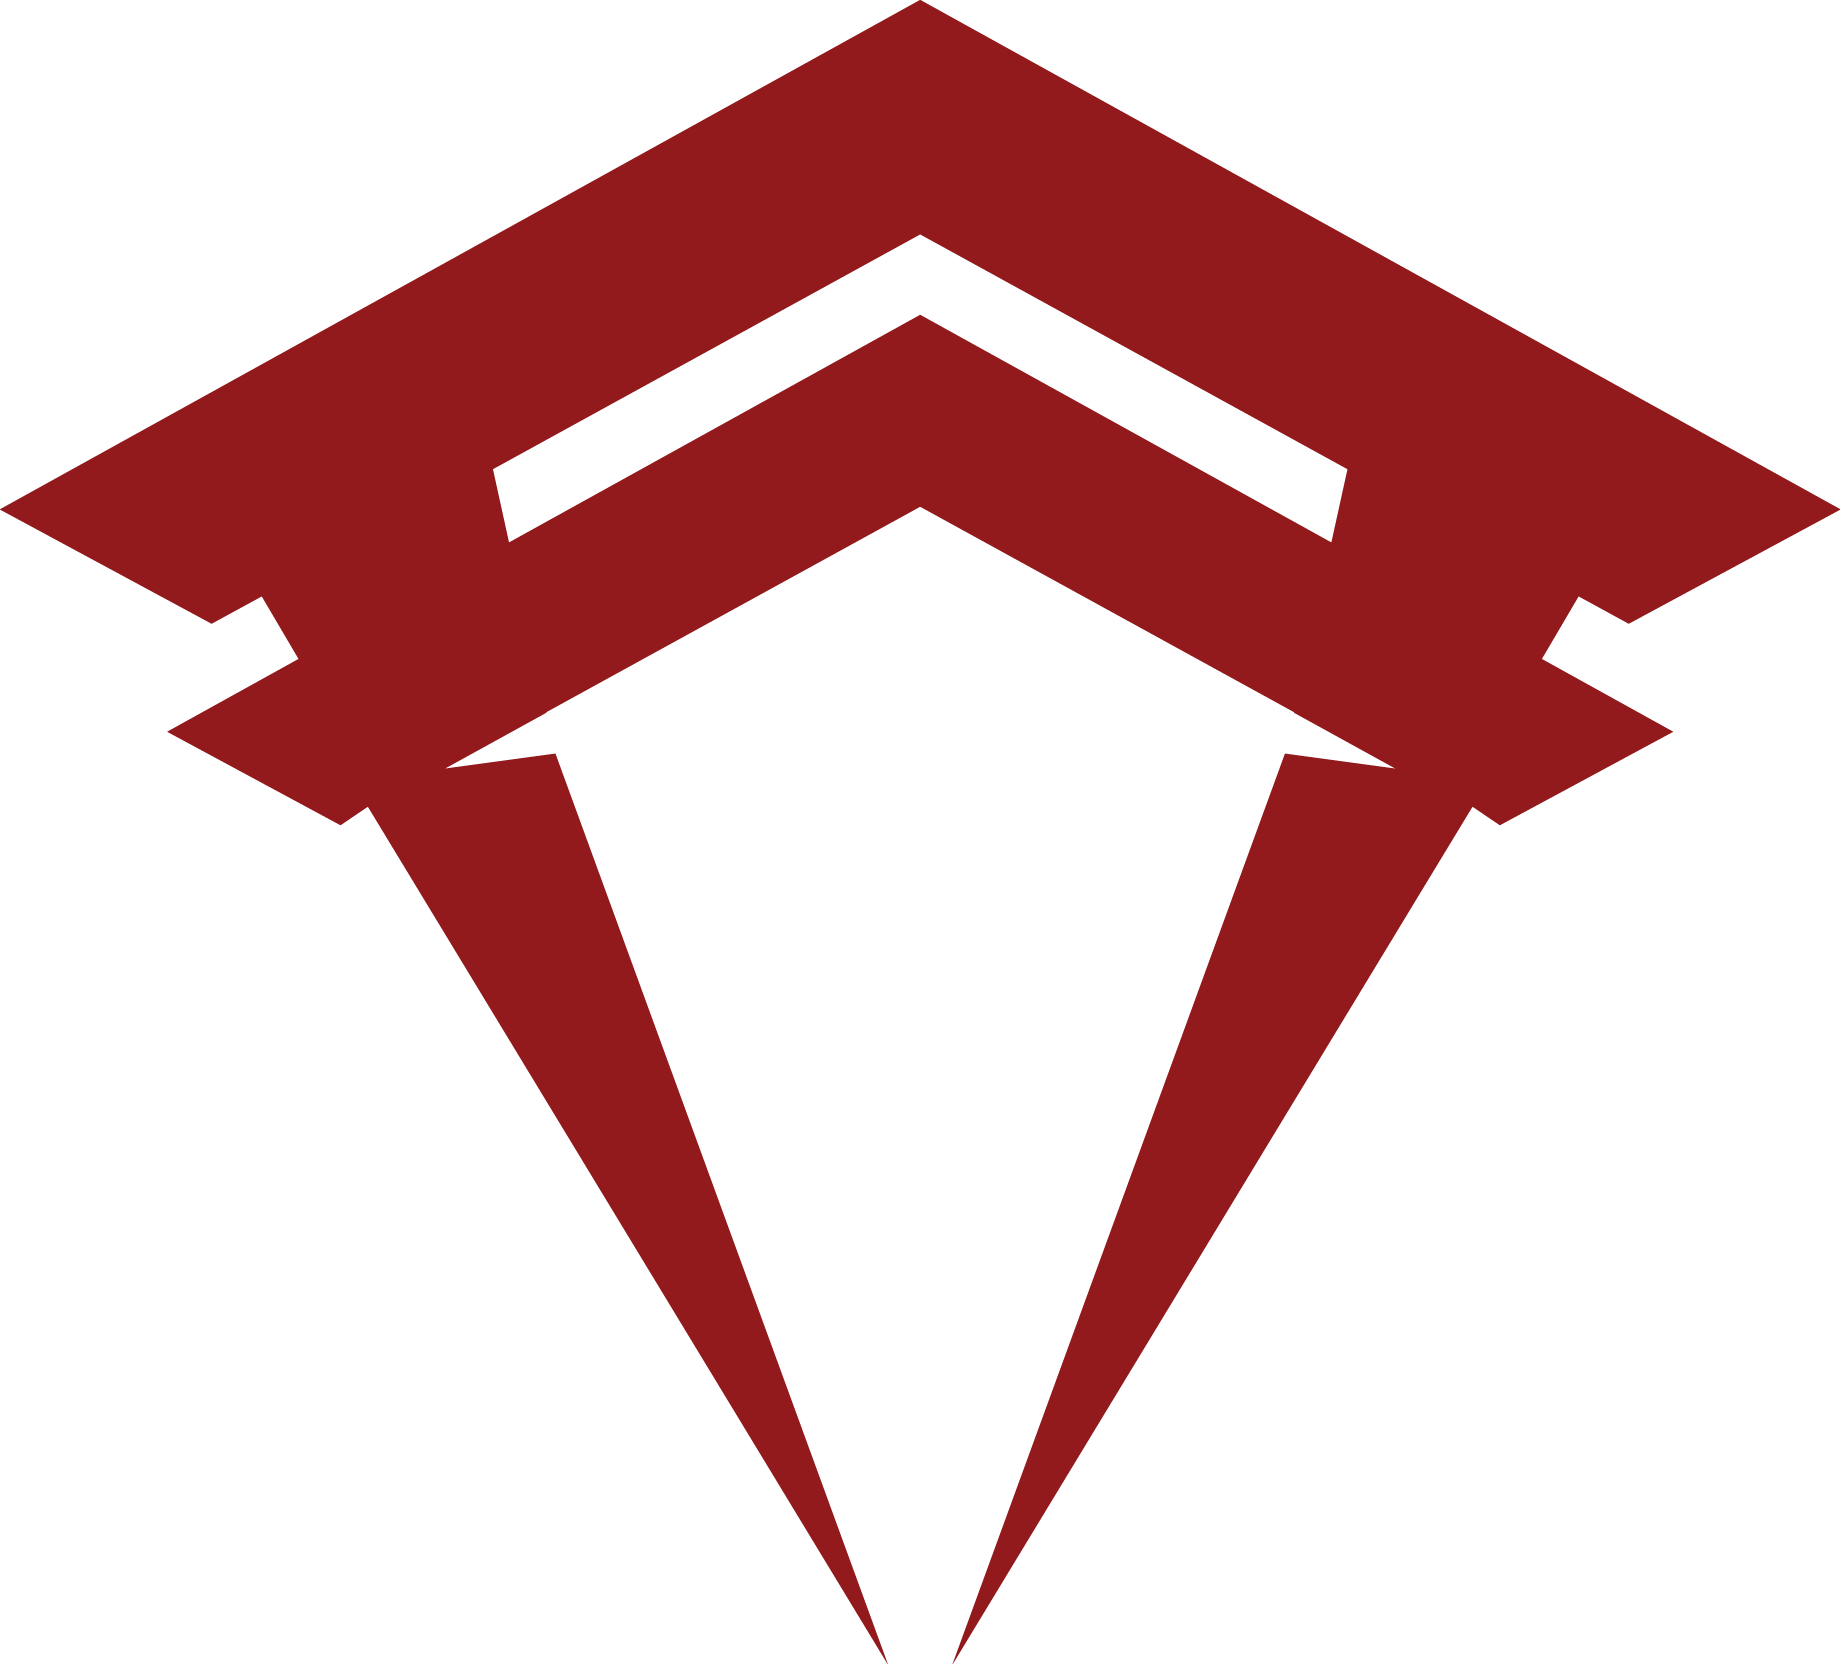 Faze apex logo png. The daily content routine